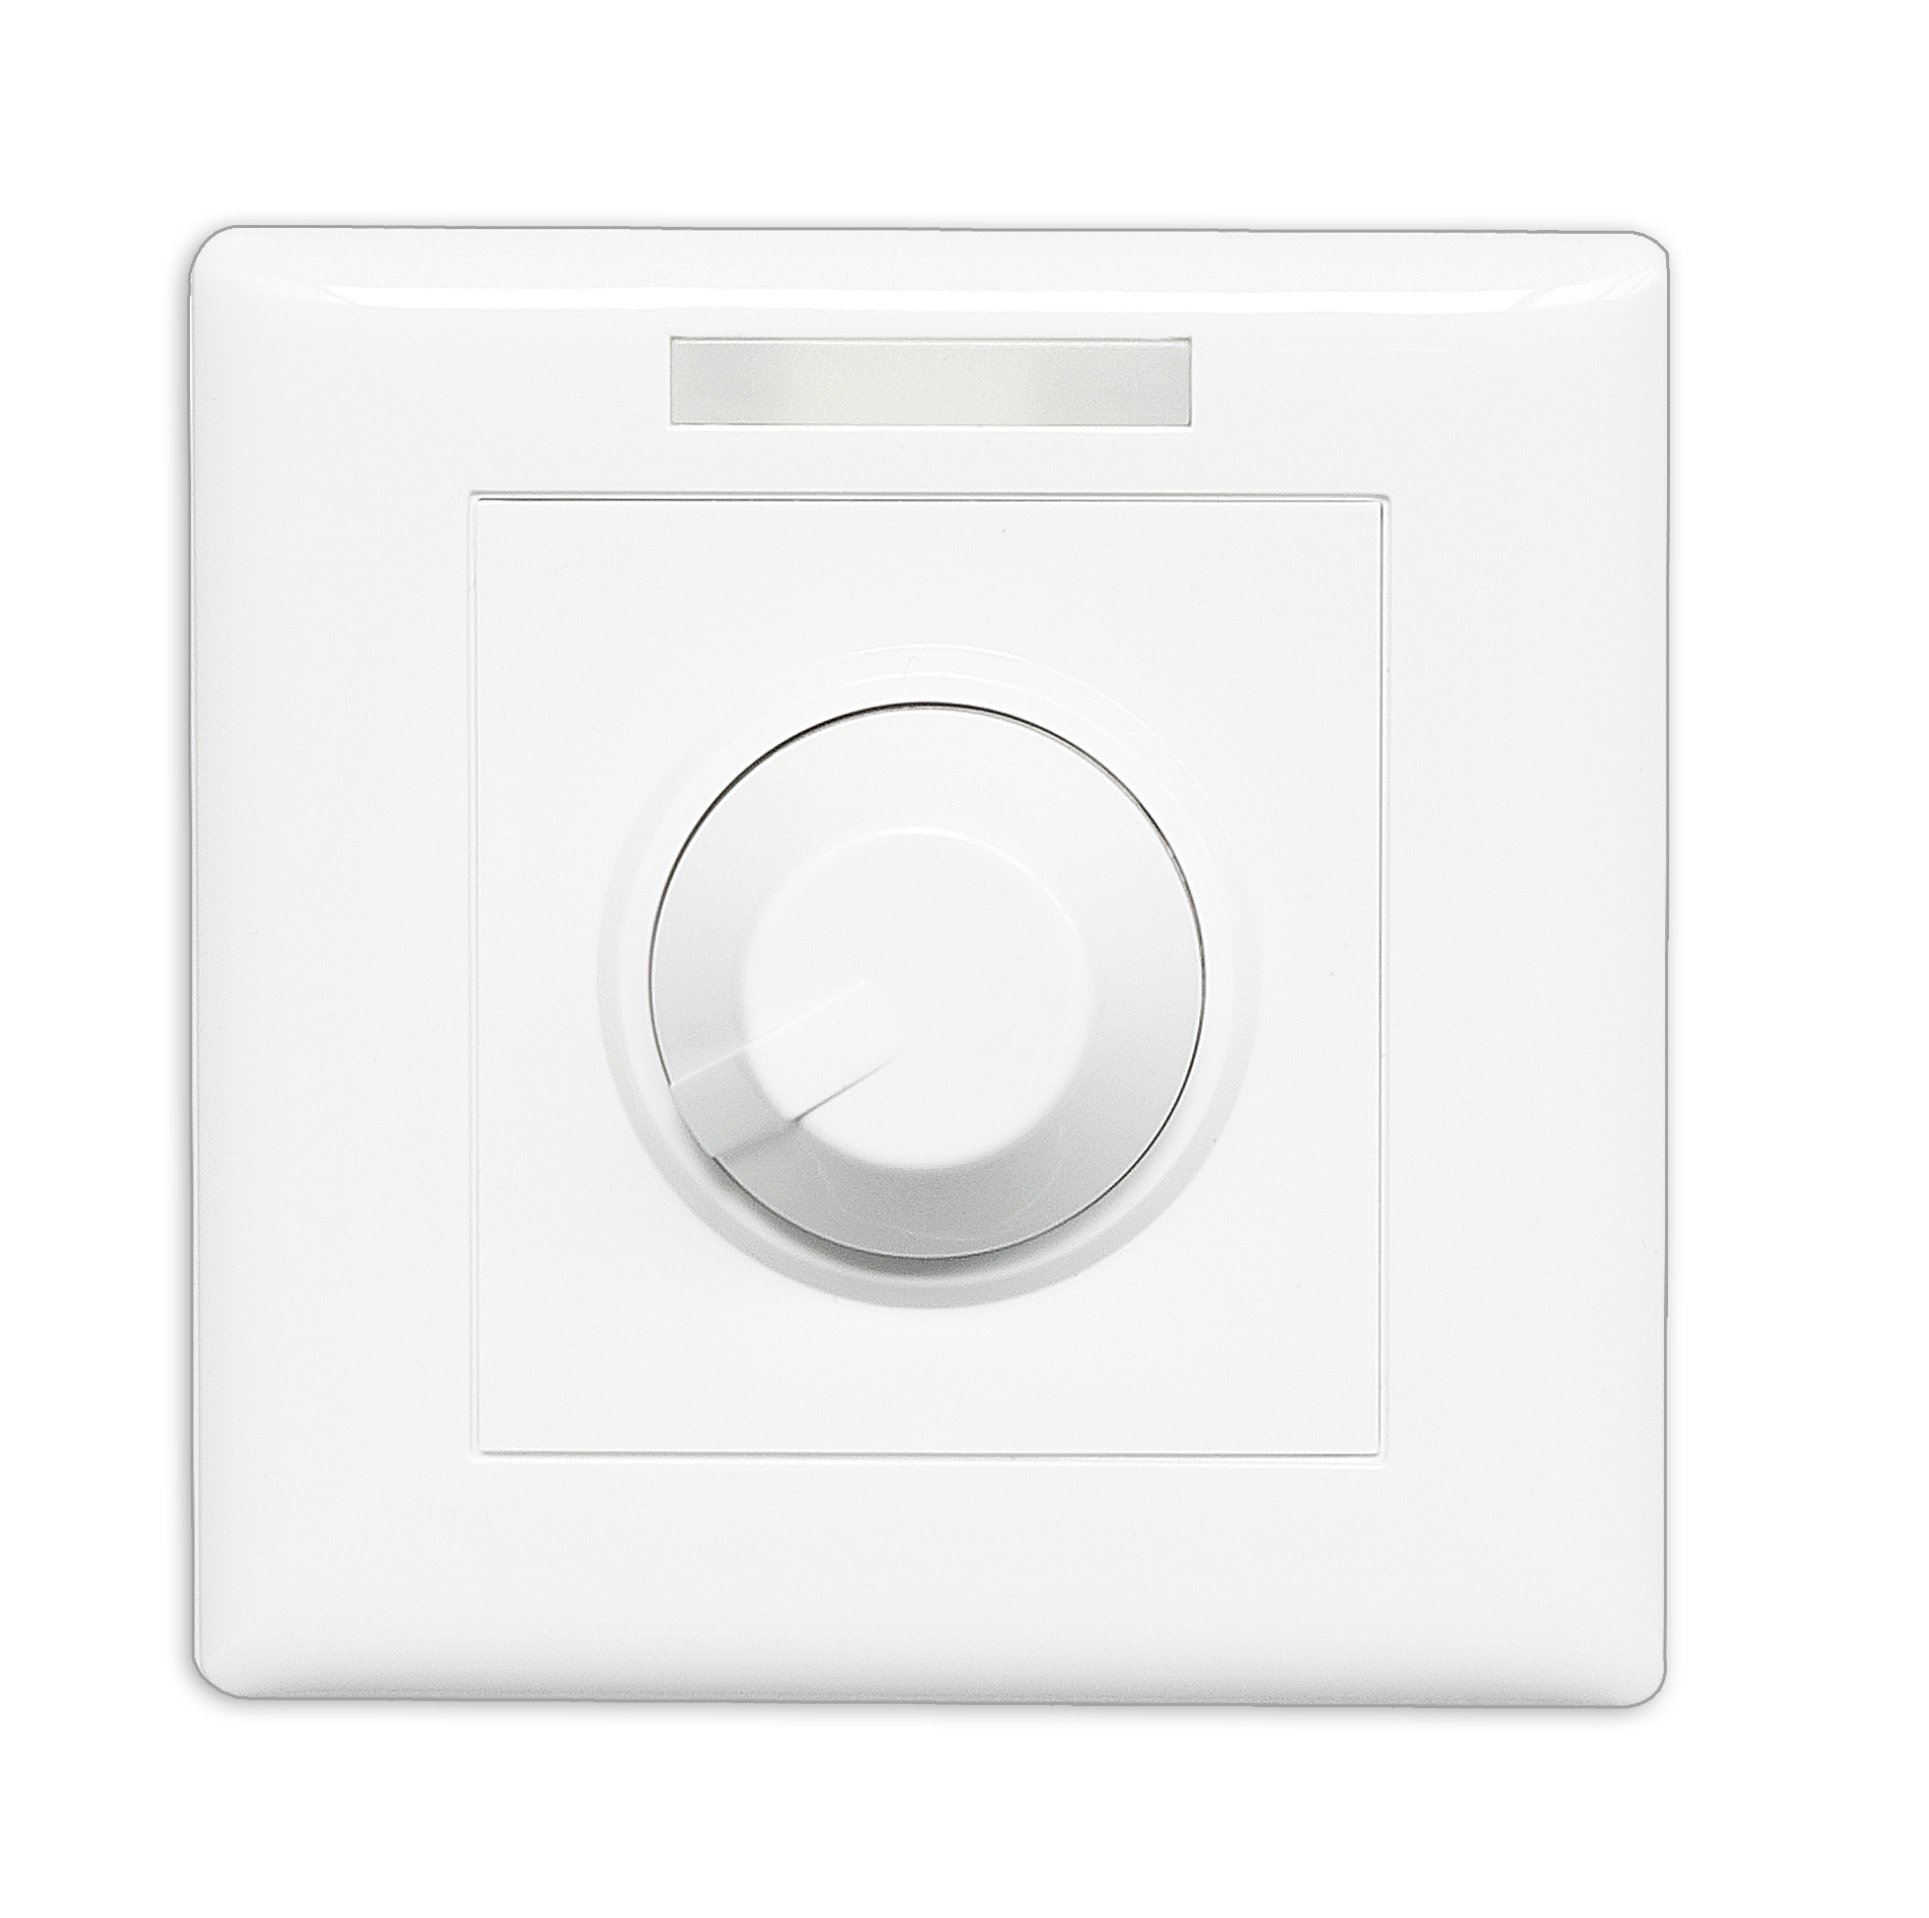 Constant Voltage LED Dimmer PWM Controller 10A 1 Channel LED Switch Dimmer 4096 cale Levels